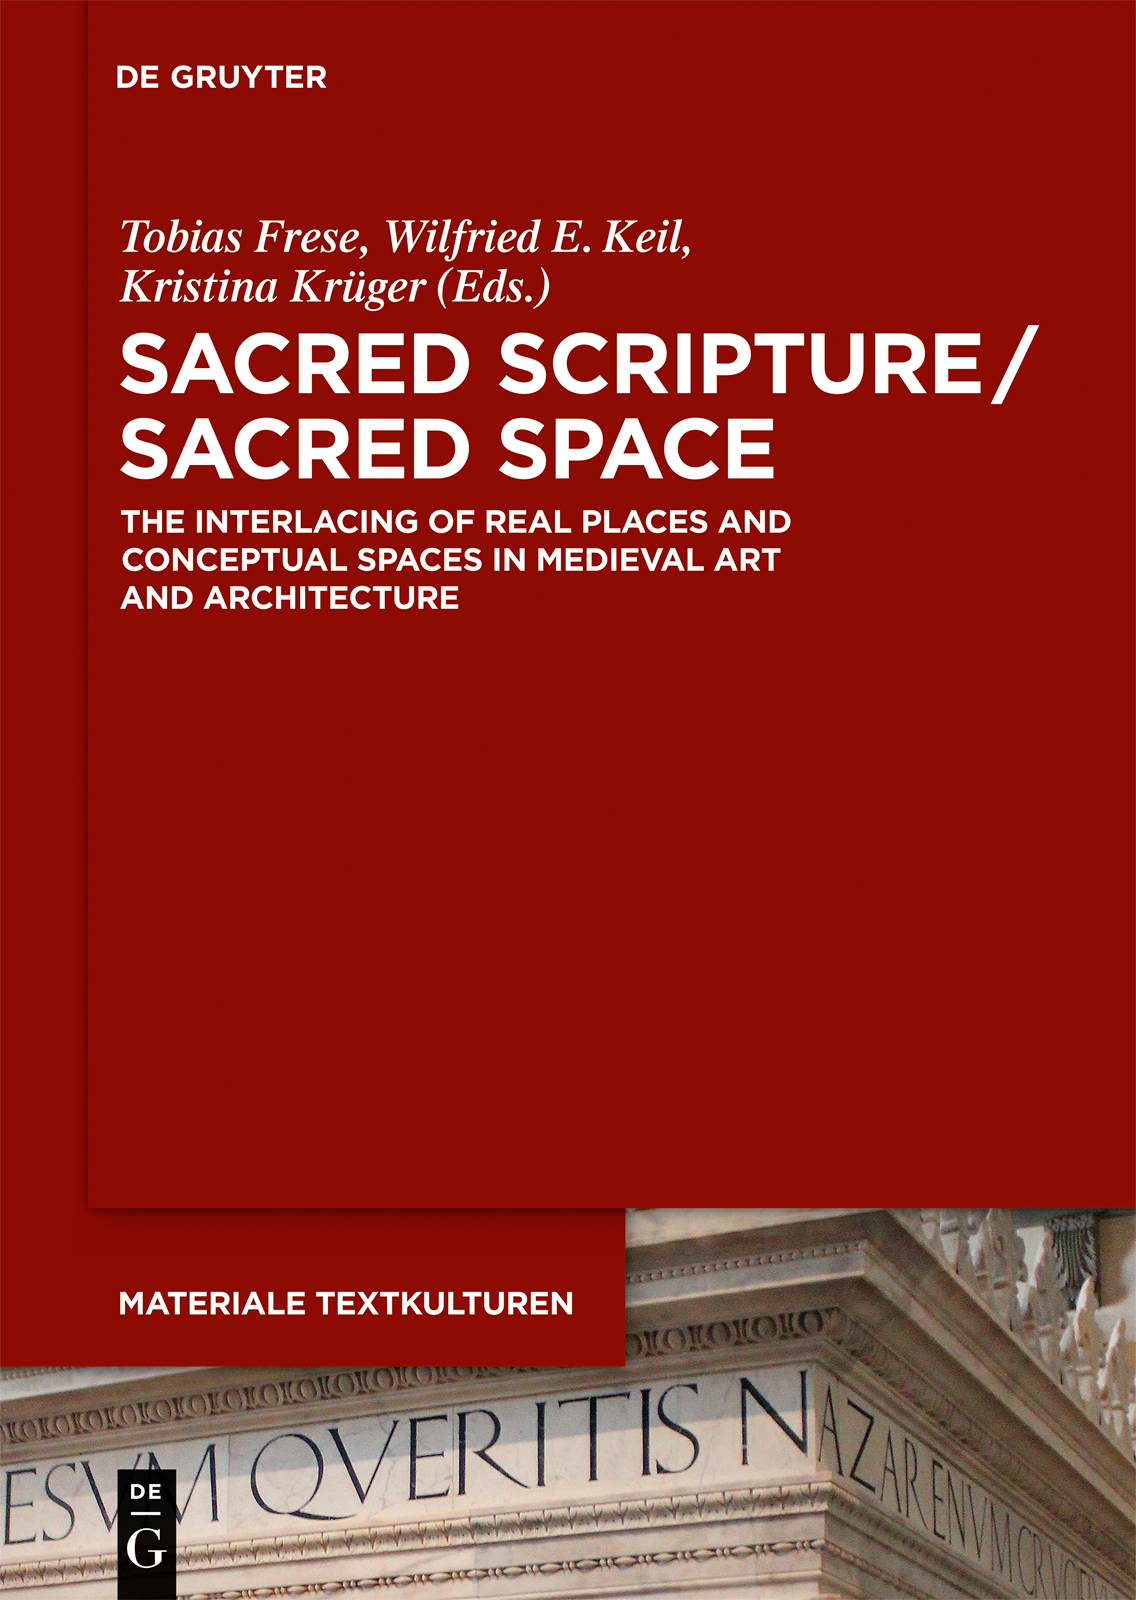 Tobias Frese, Wilfried Keil, Kristina Krüger (Hg.): Sacred Scripture / Sacred Space. The Interlacing of Real Places and Conceptual Spaces in Medieval Art and Architecture